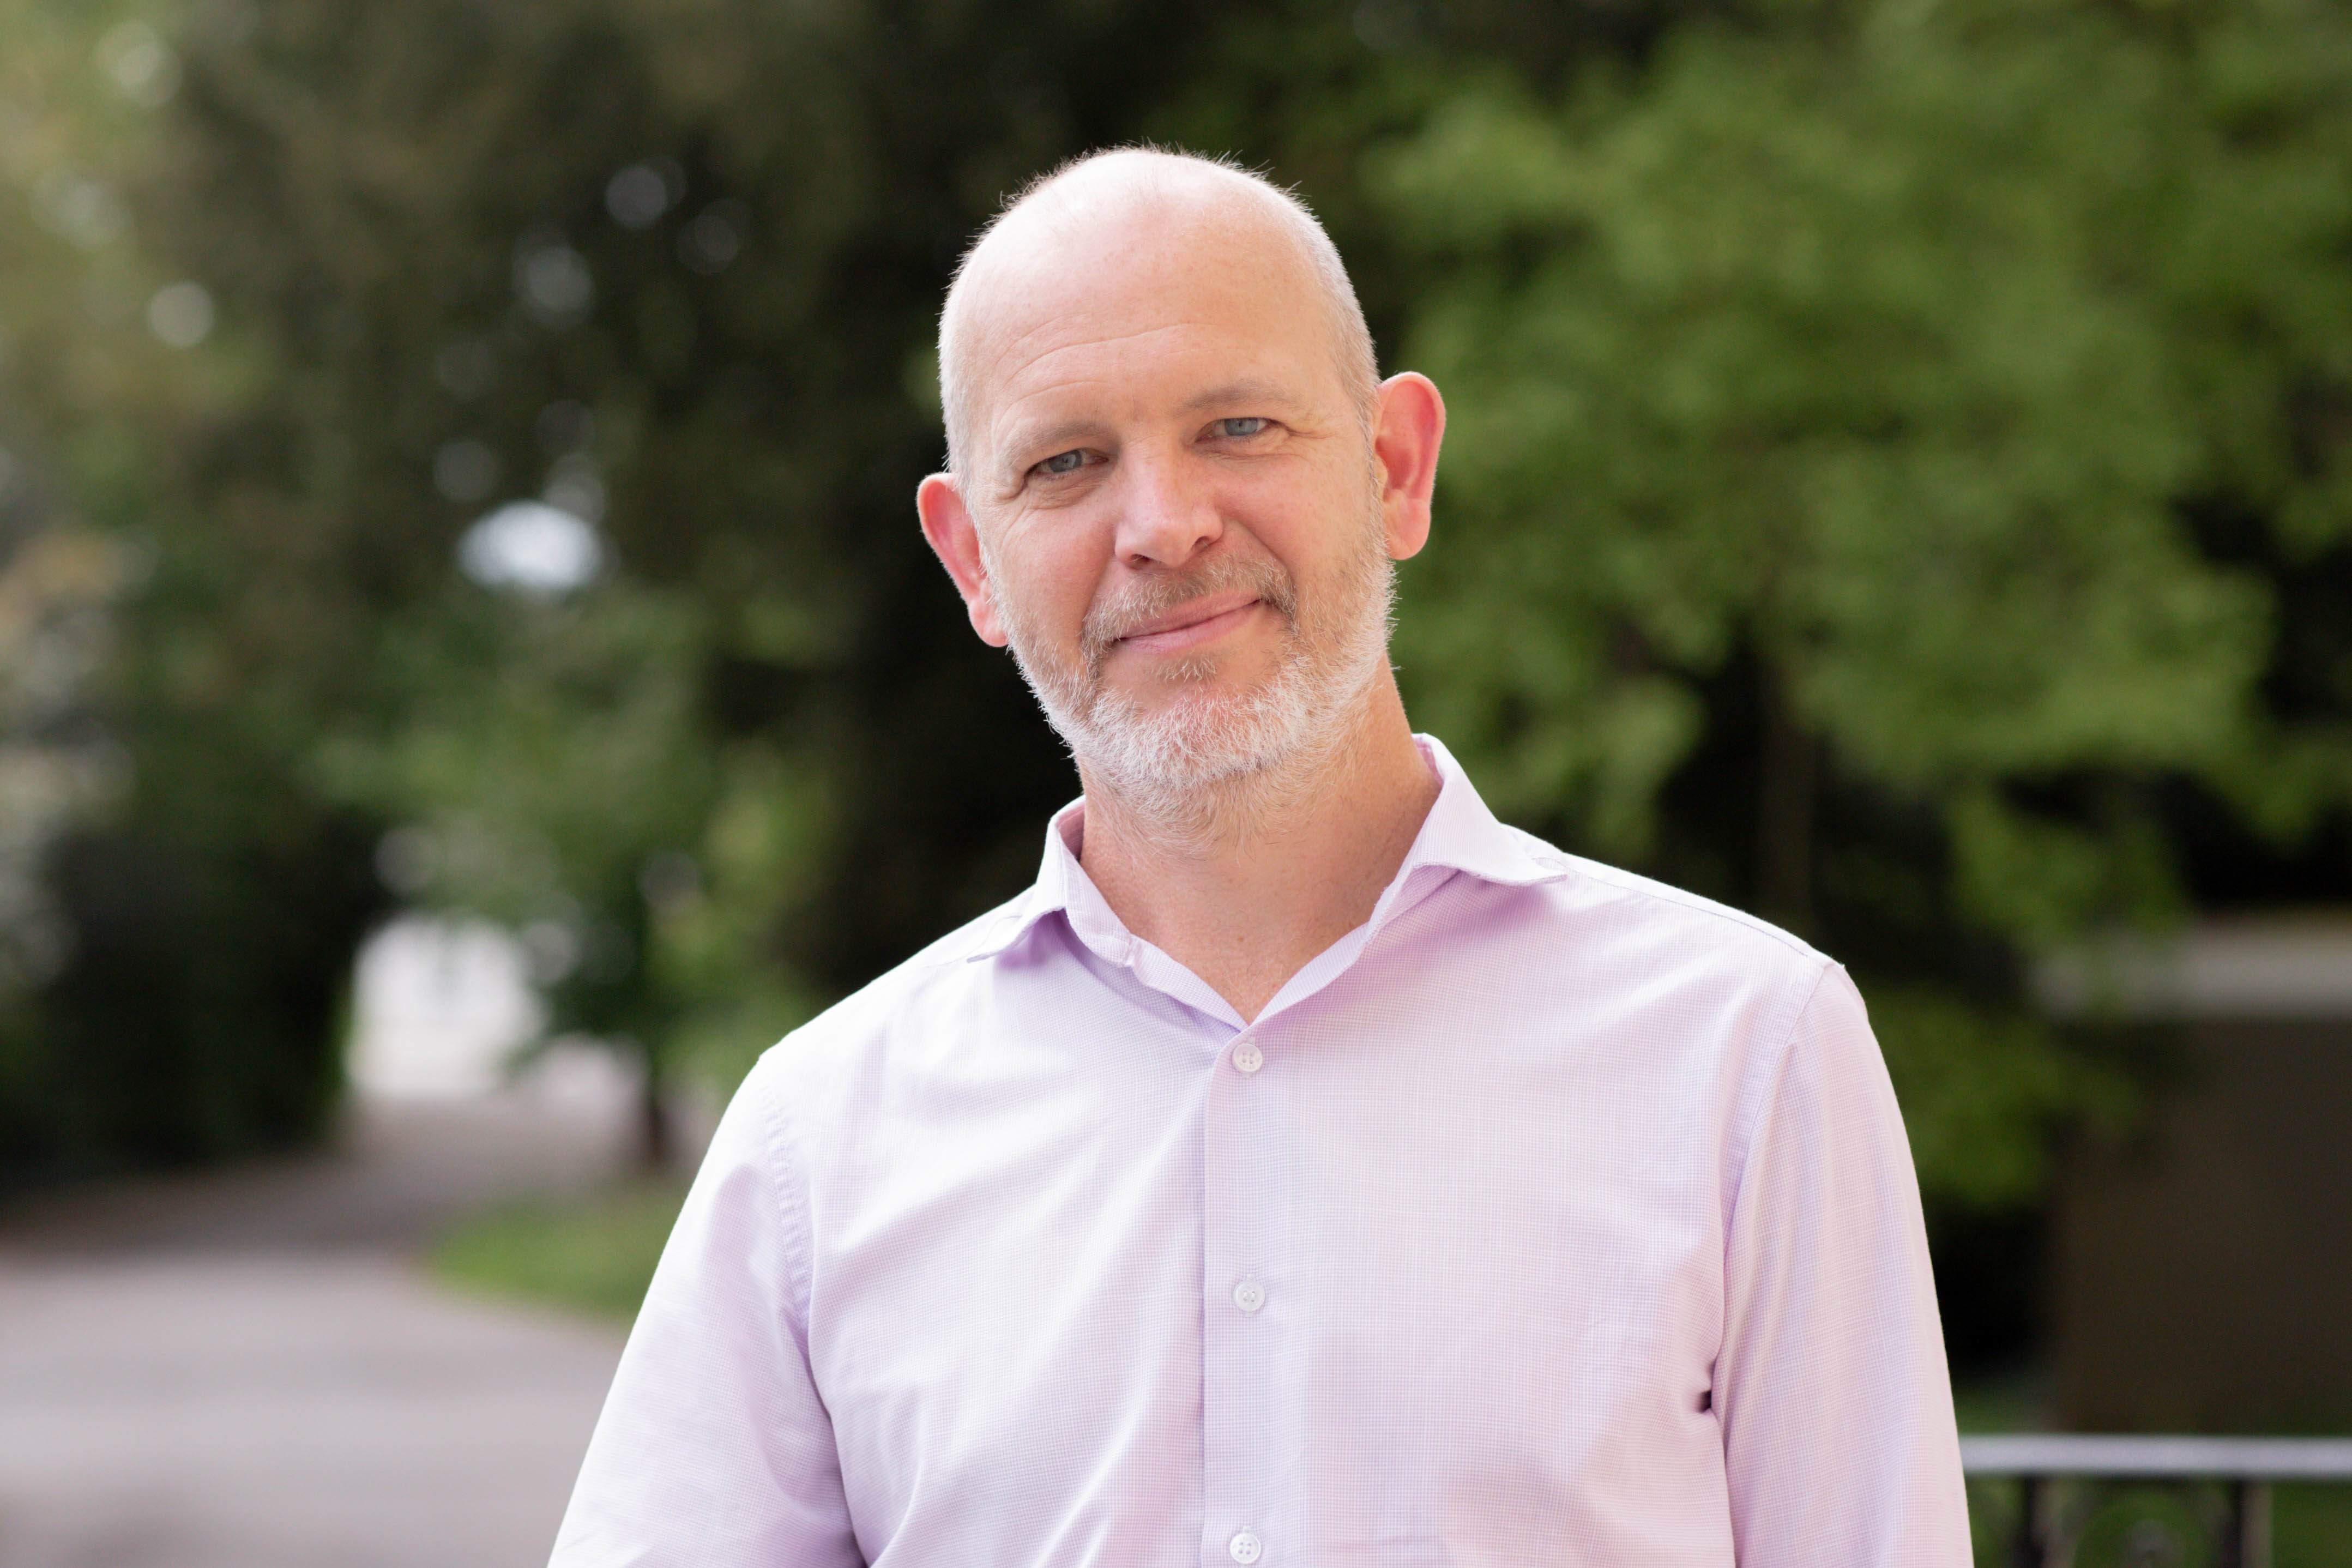 Tom Brophy Group General Counsel & Company Secretary